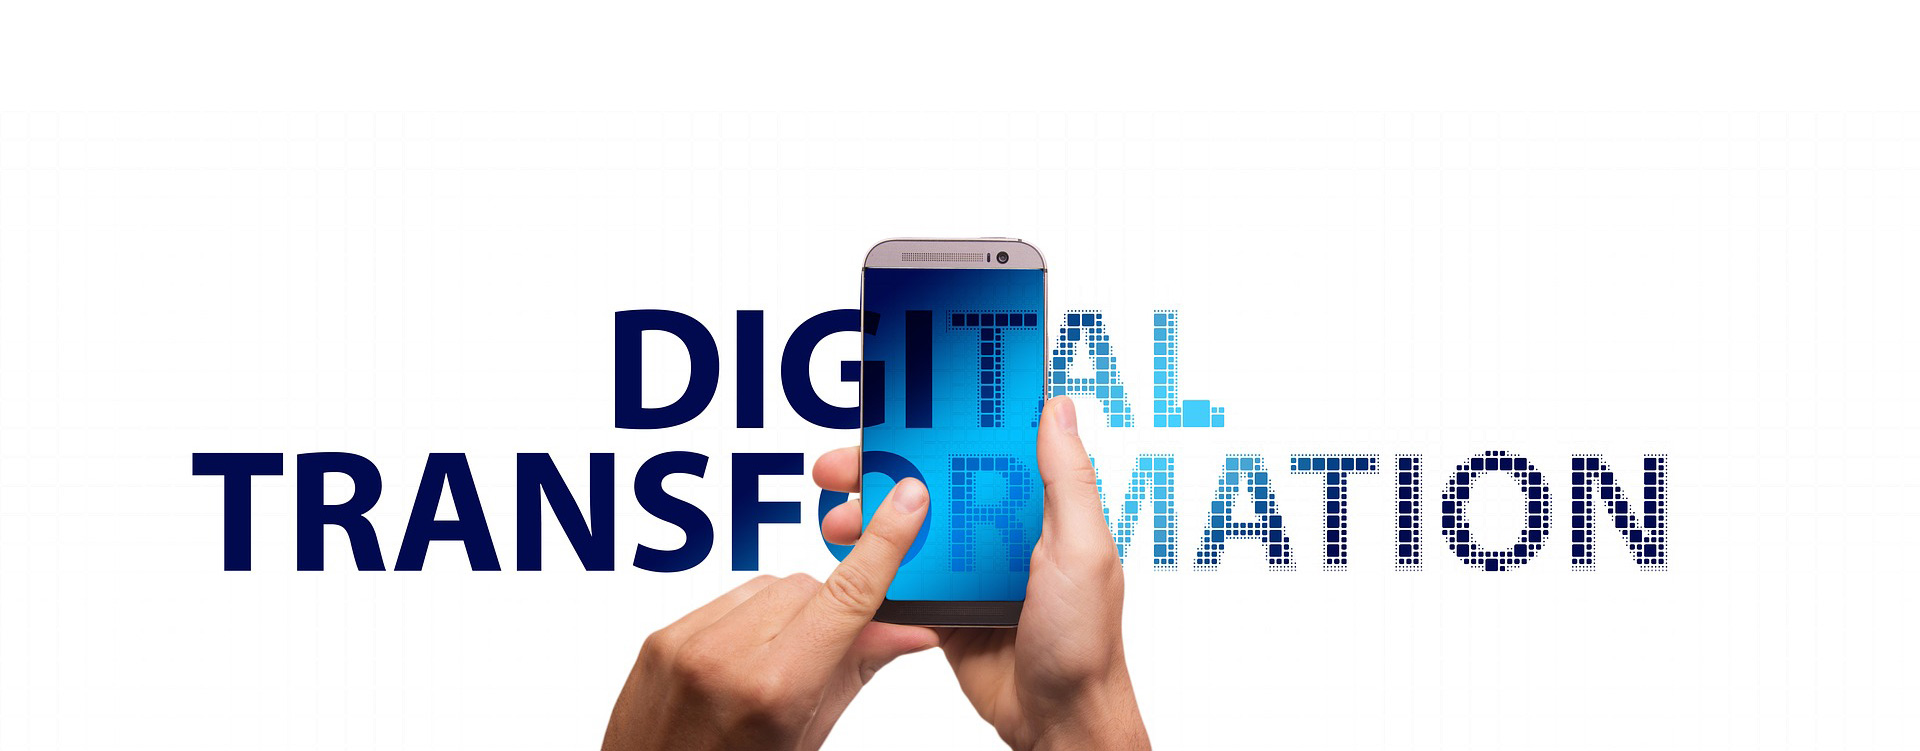 check the post:What is a Digital Transformation Strategy? for a description of the image